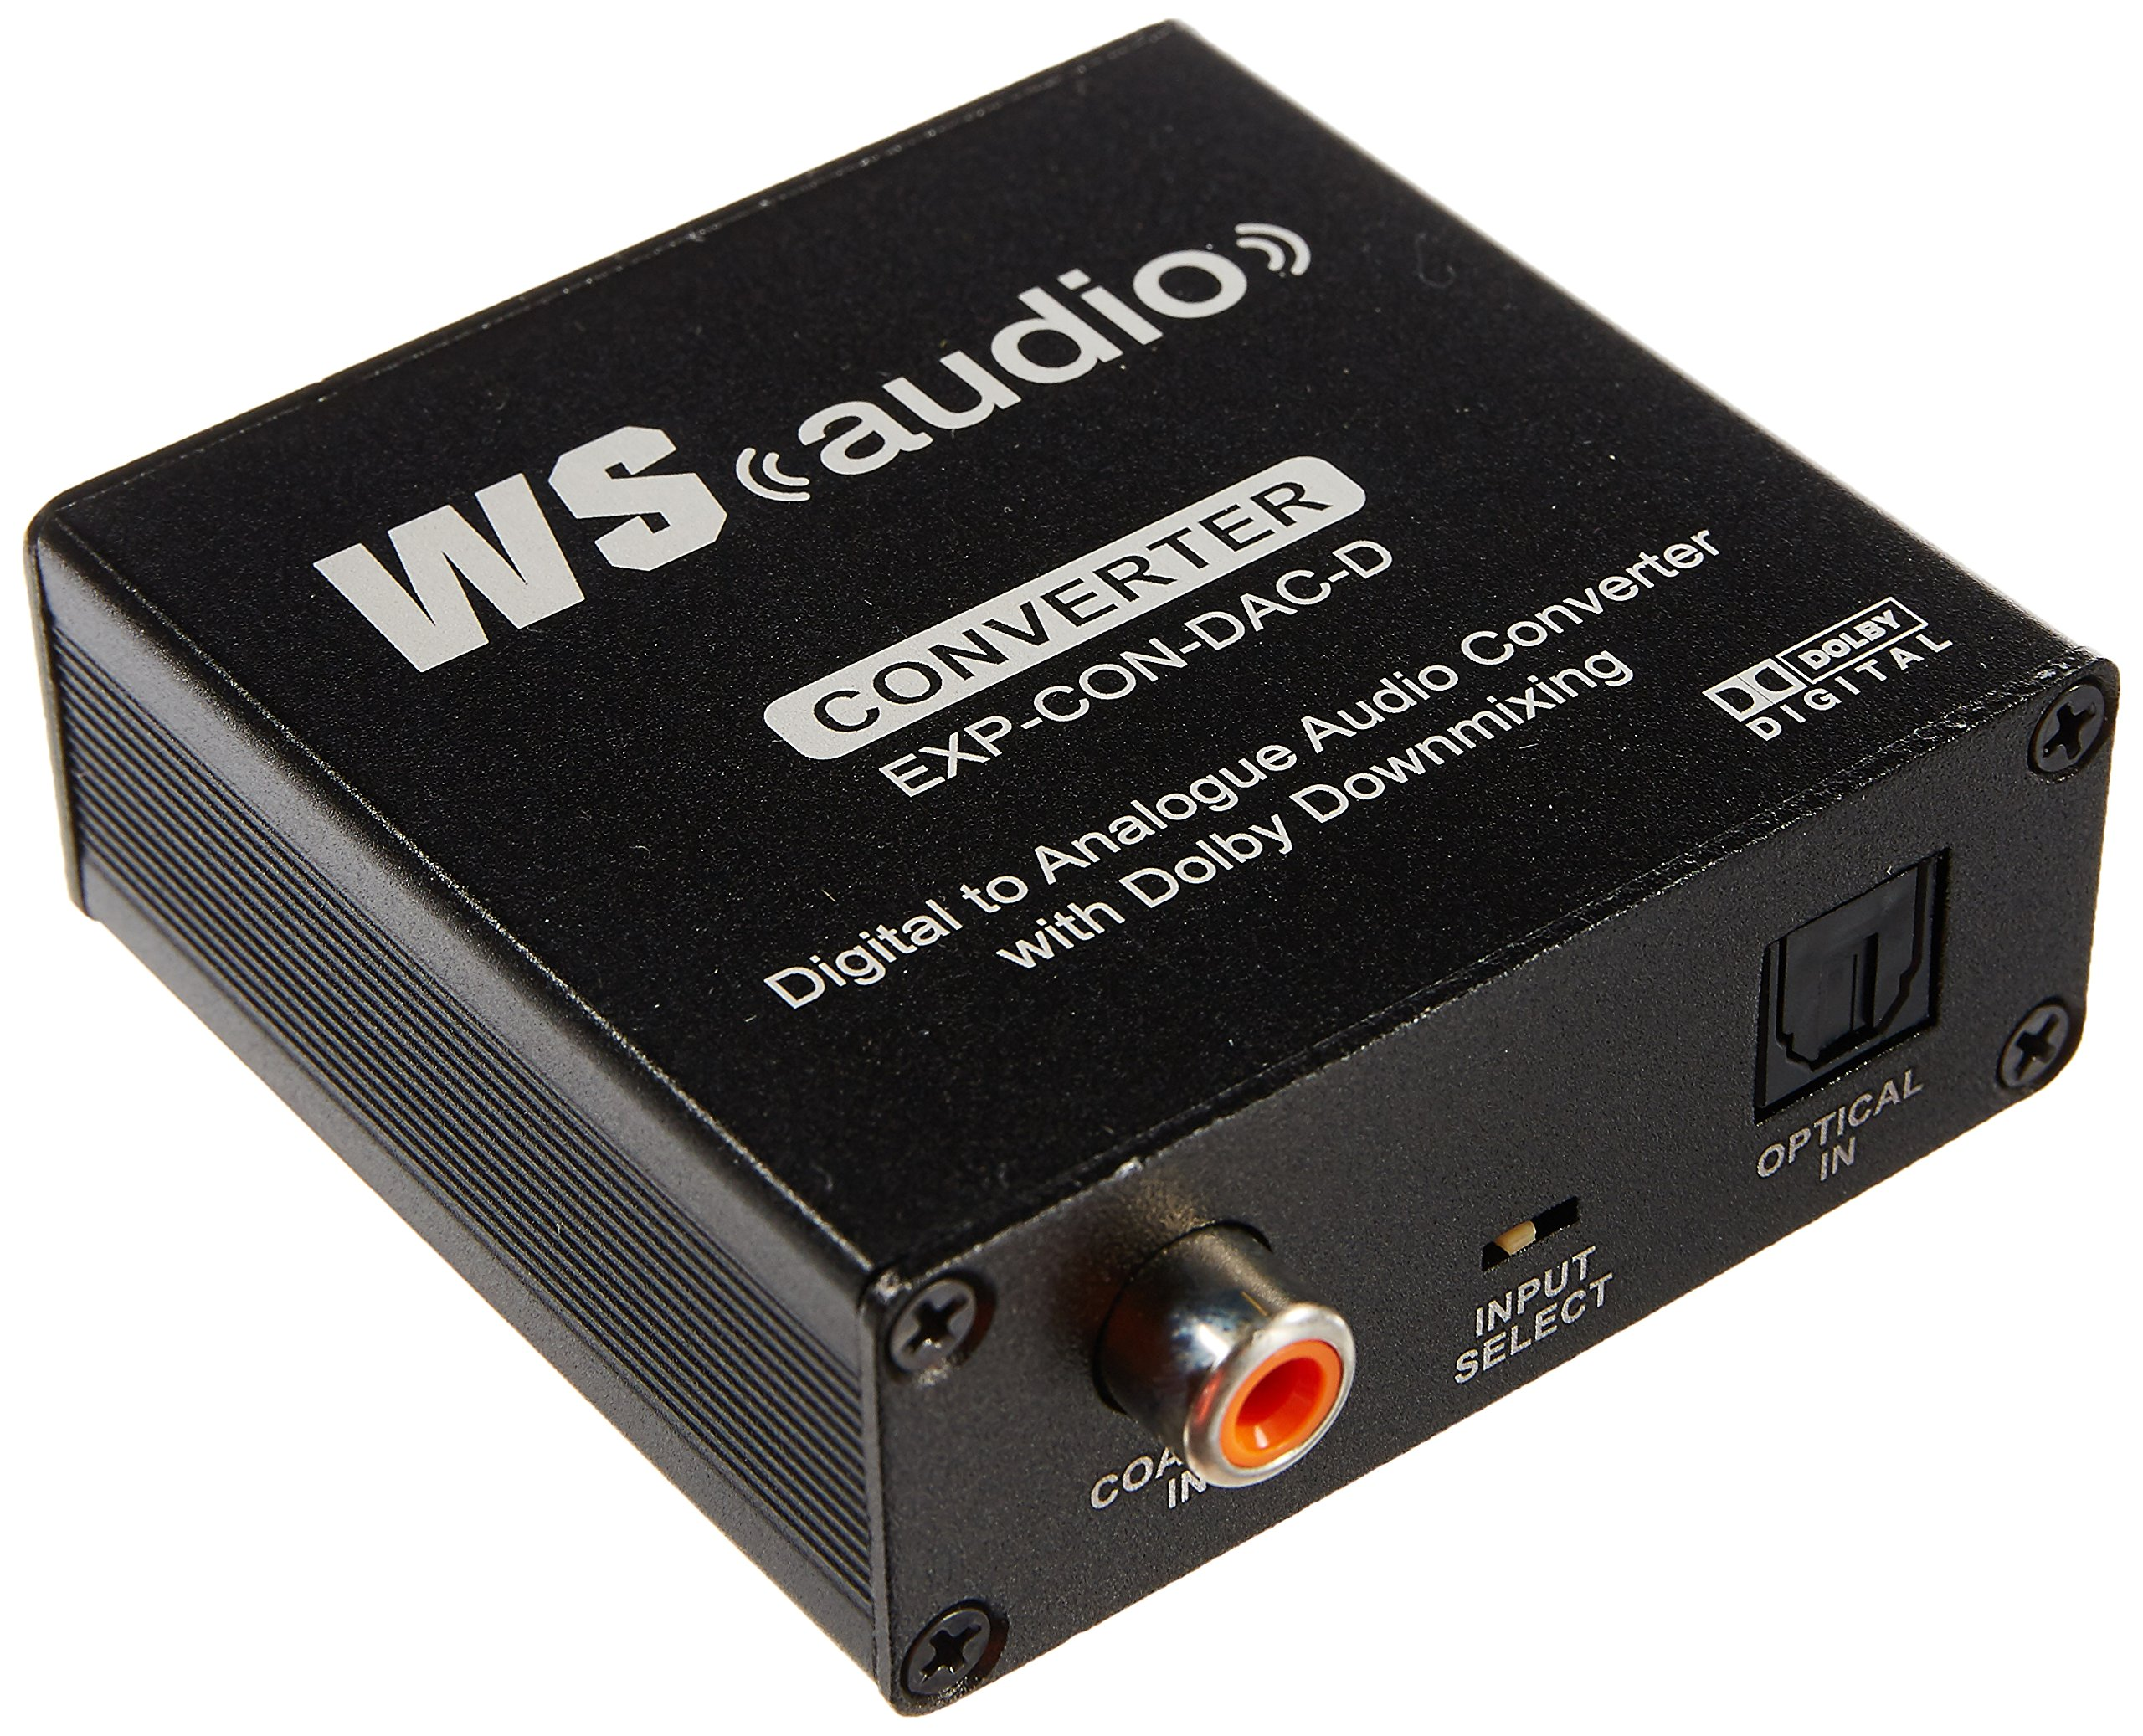 WyreStorm Express™ Digital to Analogue Audio Converter with Dolby Downmix by Wyrestorm